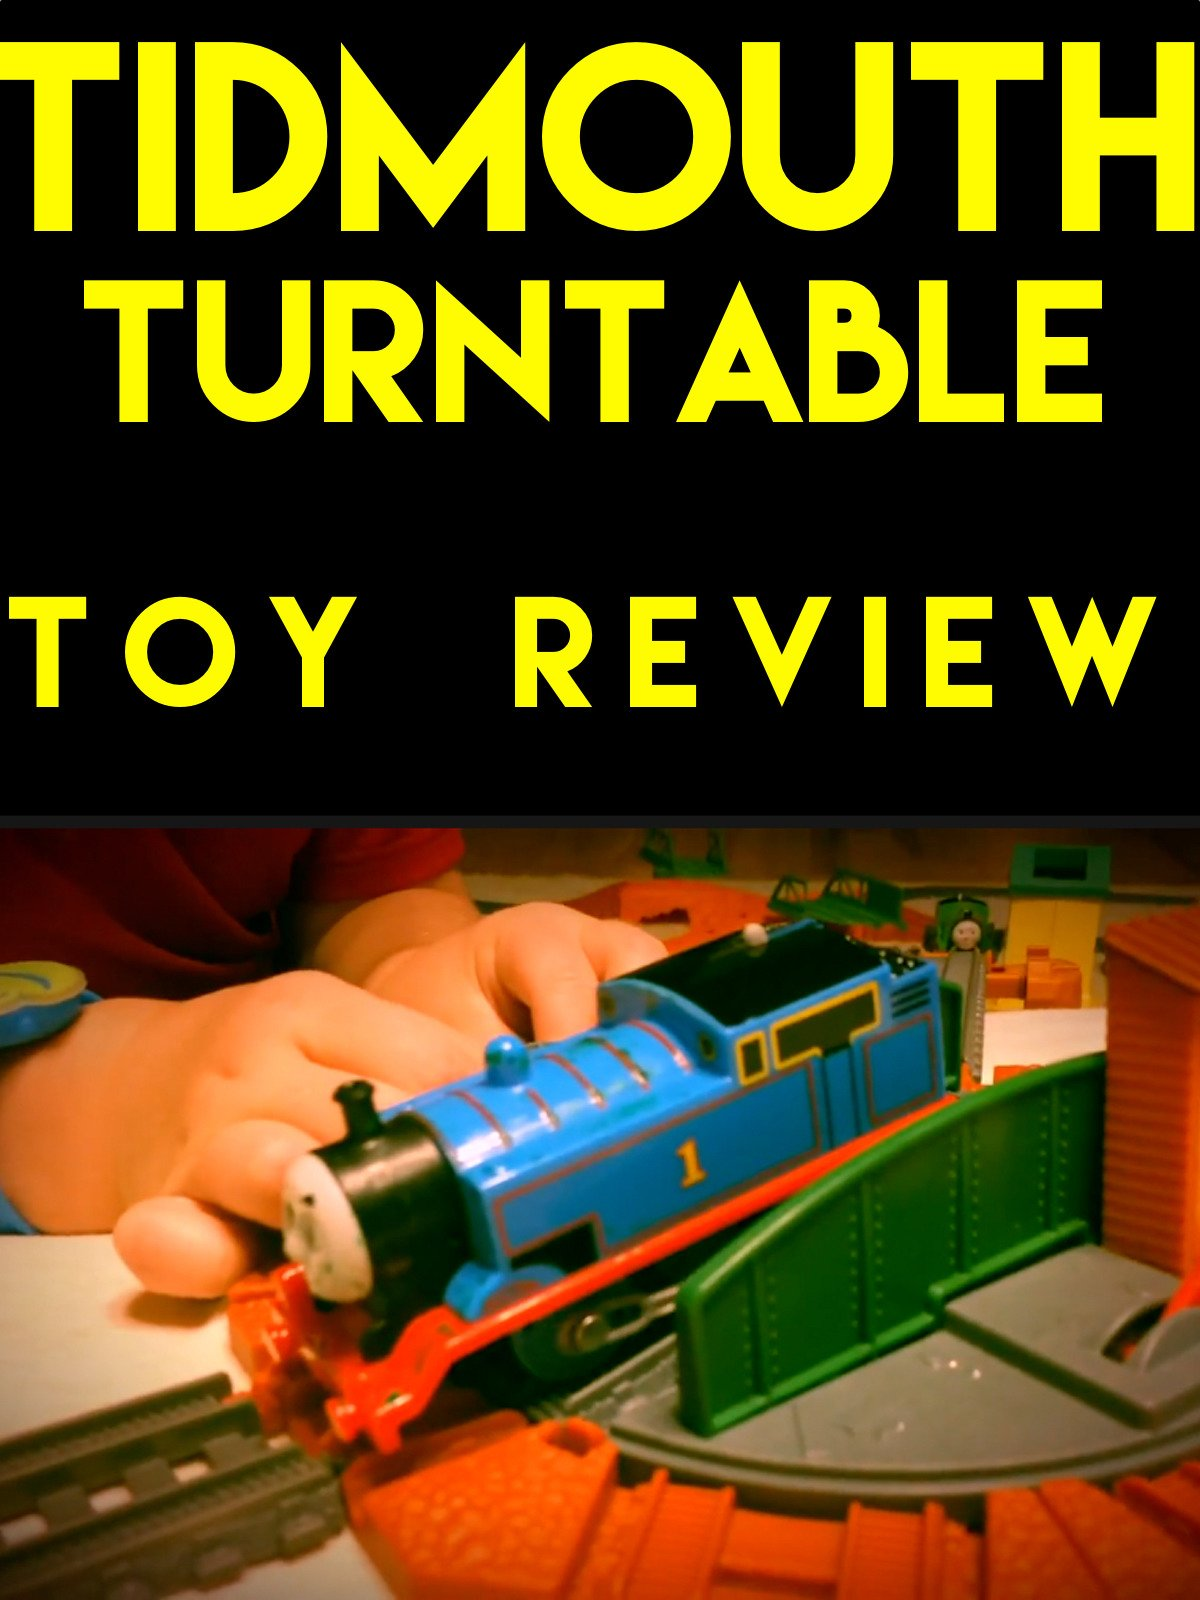 Clip: Review: Tidmouth Turntable Toy